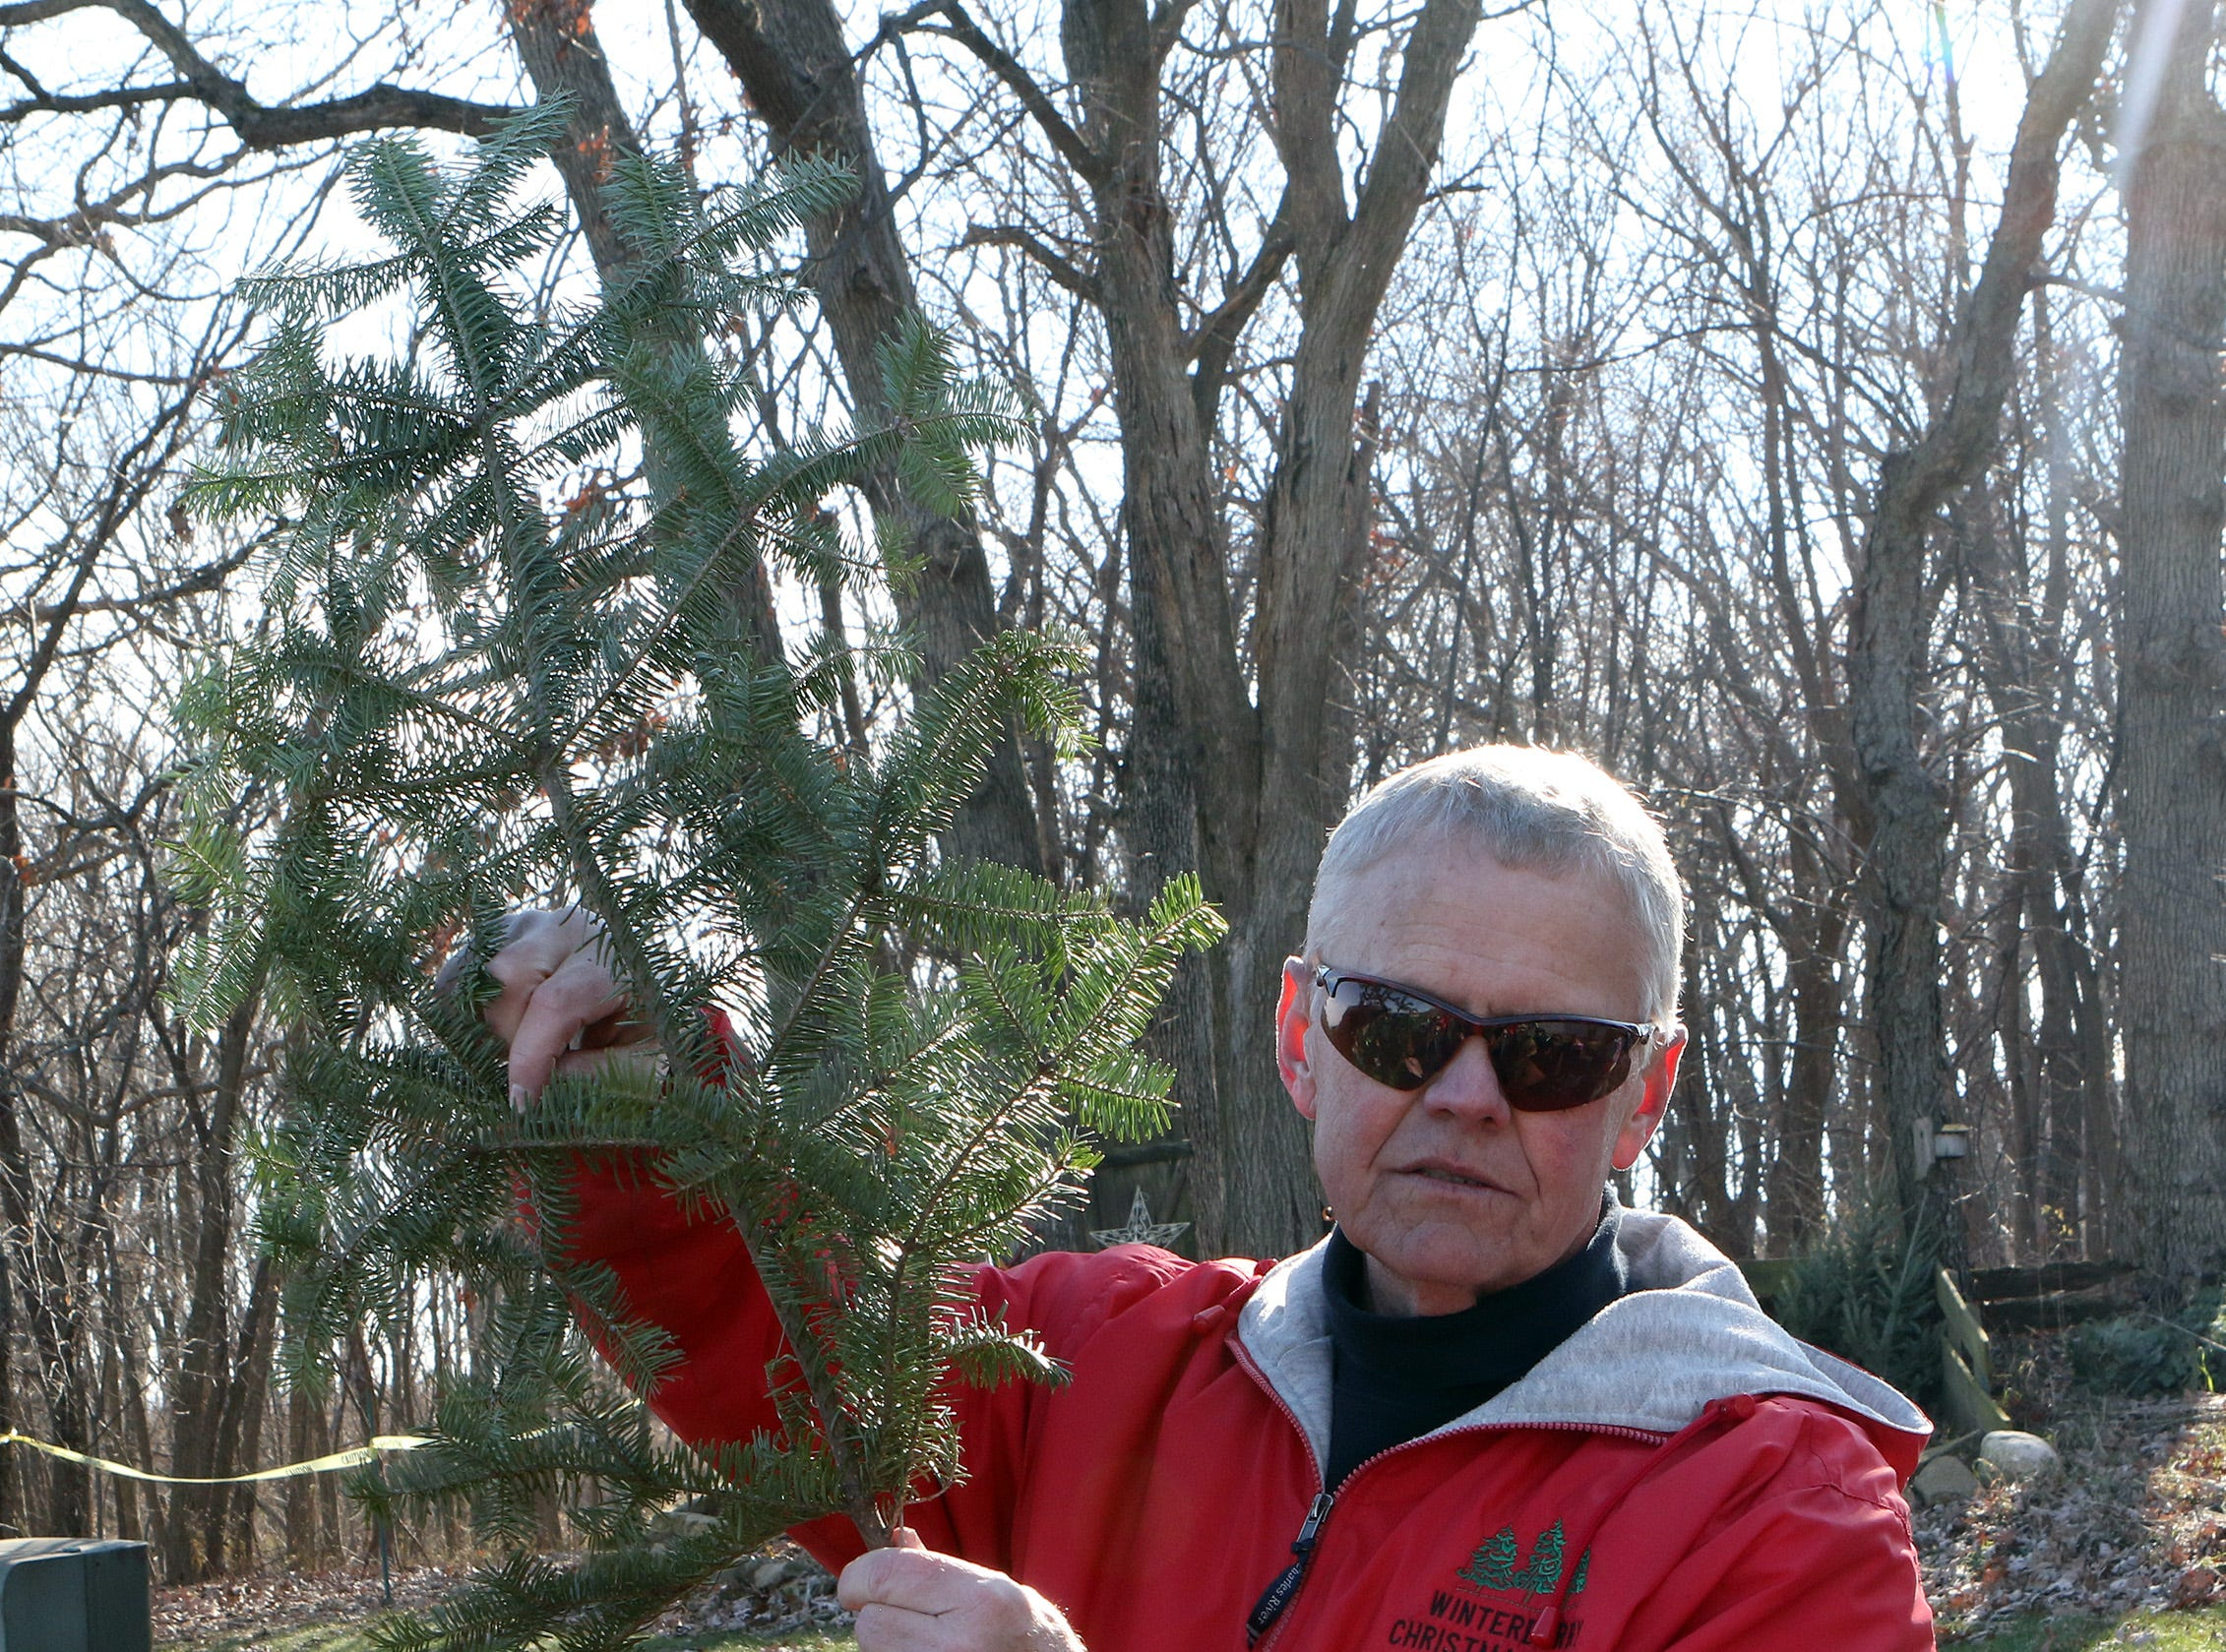 Greg Lancaster, owner of Winterberry Tree Farm in Brooklyn, teaches fourth and fifth grade students how to identify different types of evergreen trees by how the needles grow on the branch. Students visited the farm on Nov. 15 to learn about the Christmas tree industry.